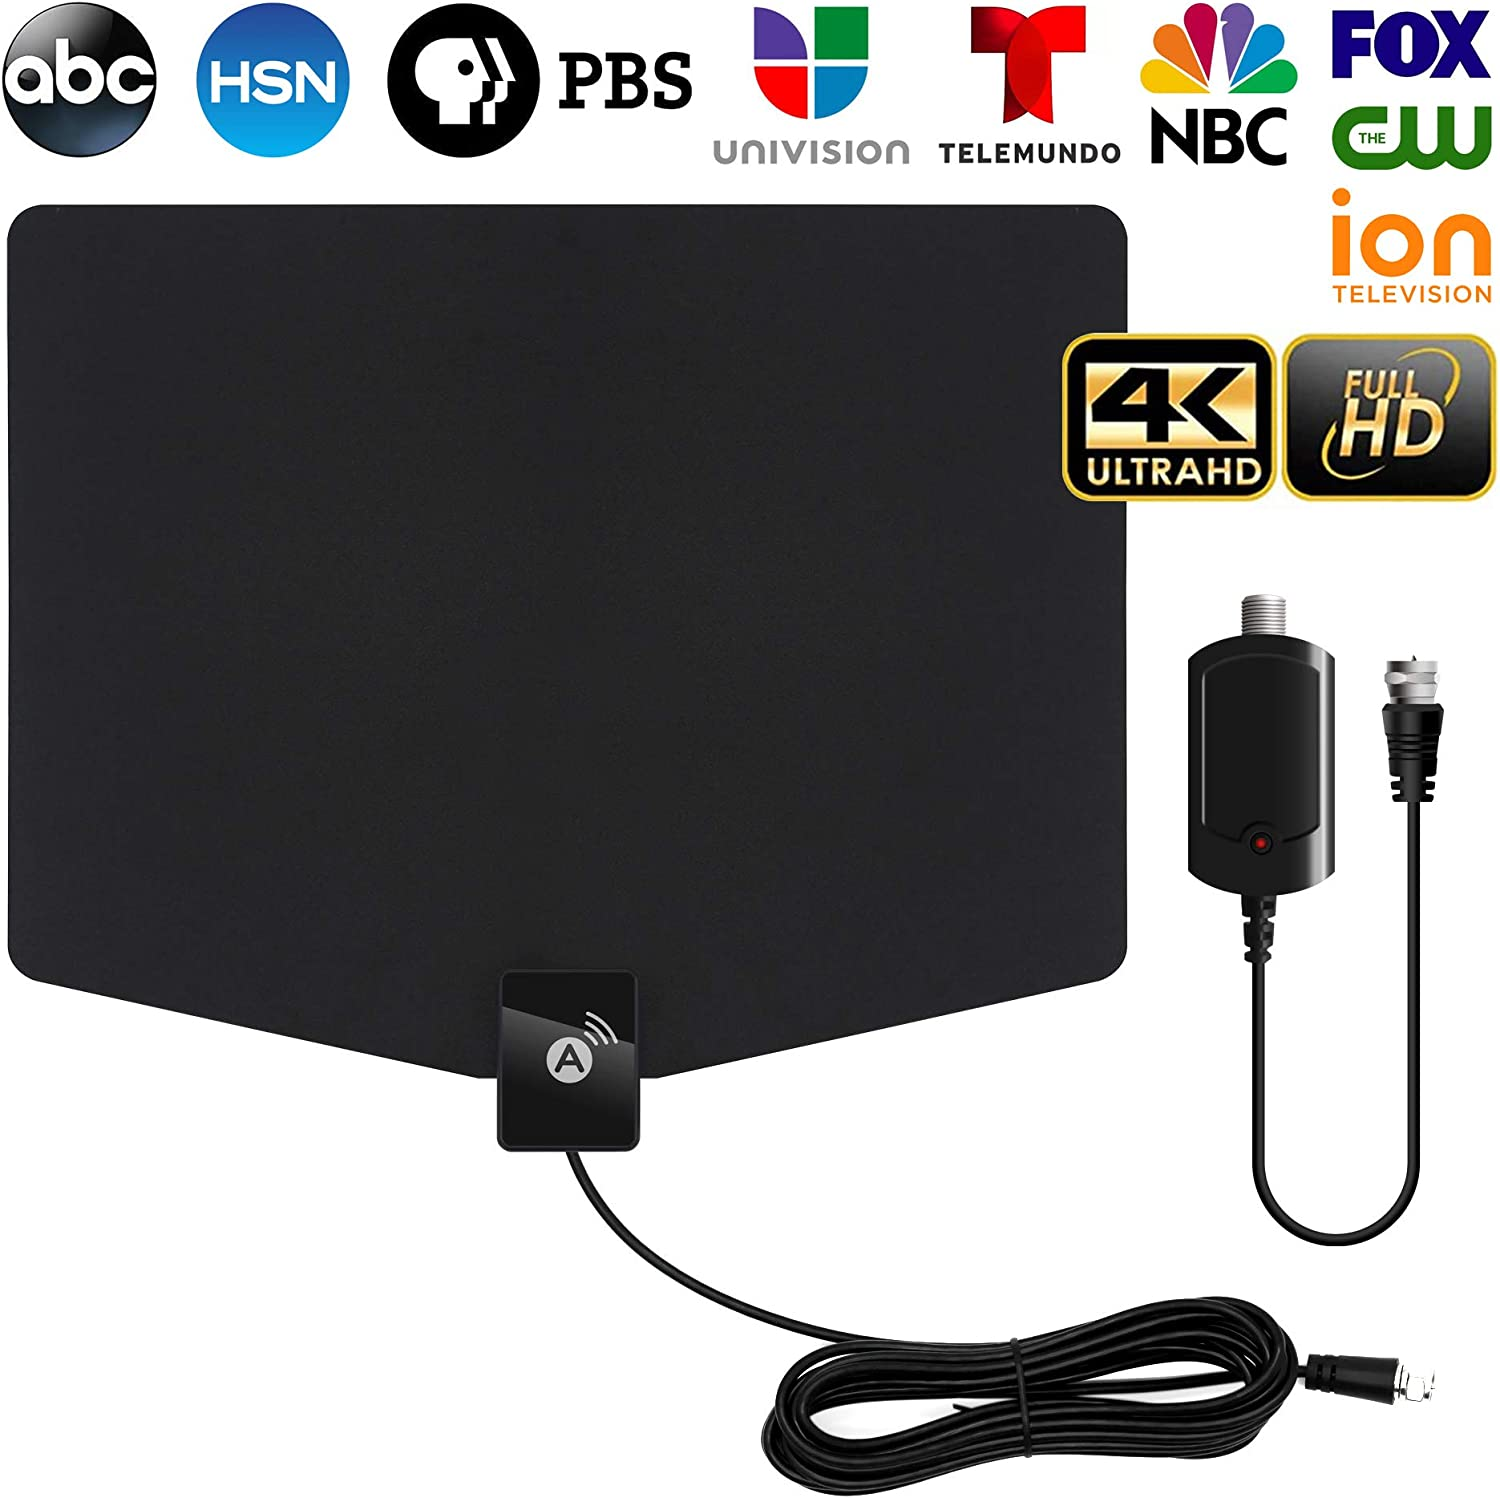 HDTV Antenna, Coax Cable Indoor Digital TV Antenna 120+ Miles Long Range with Support 4K 1080p /& All Older TVs Indoor Powerful HDTV Amplifier Signal Booster 2020 Latest